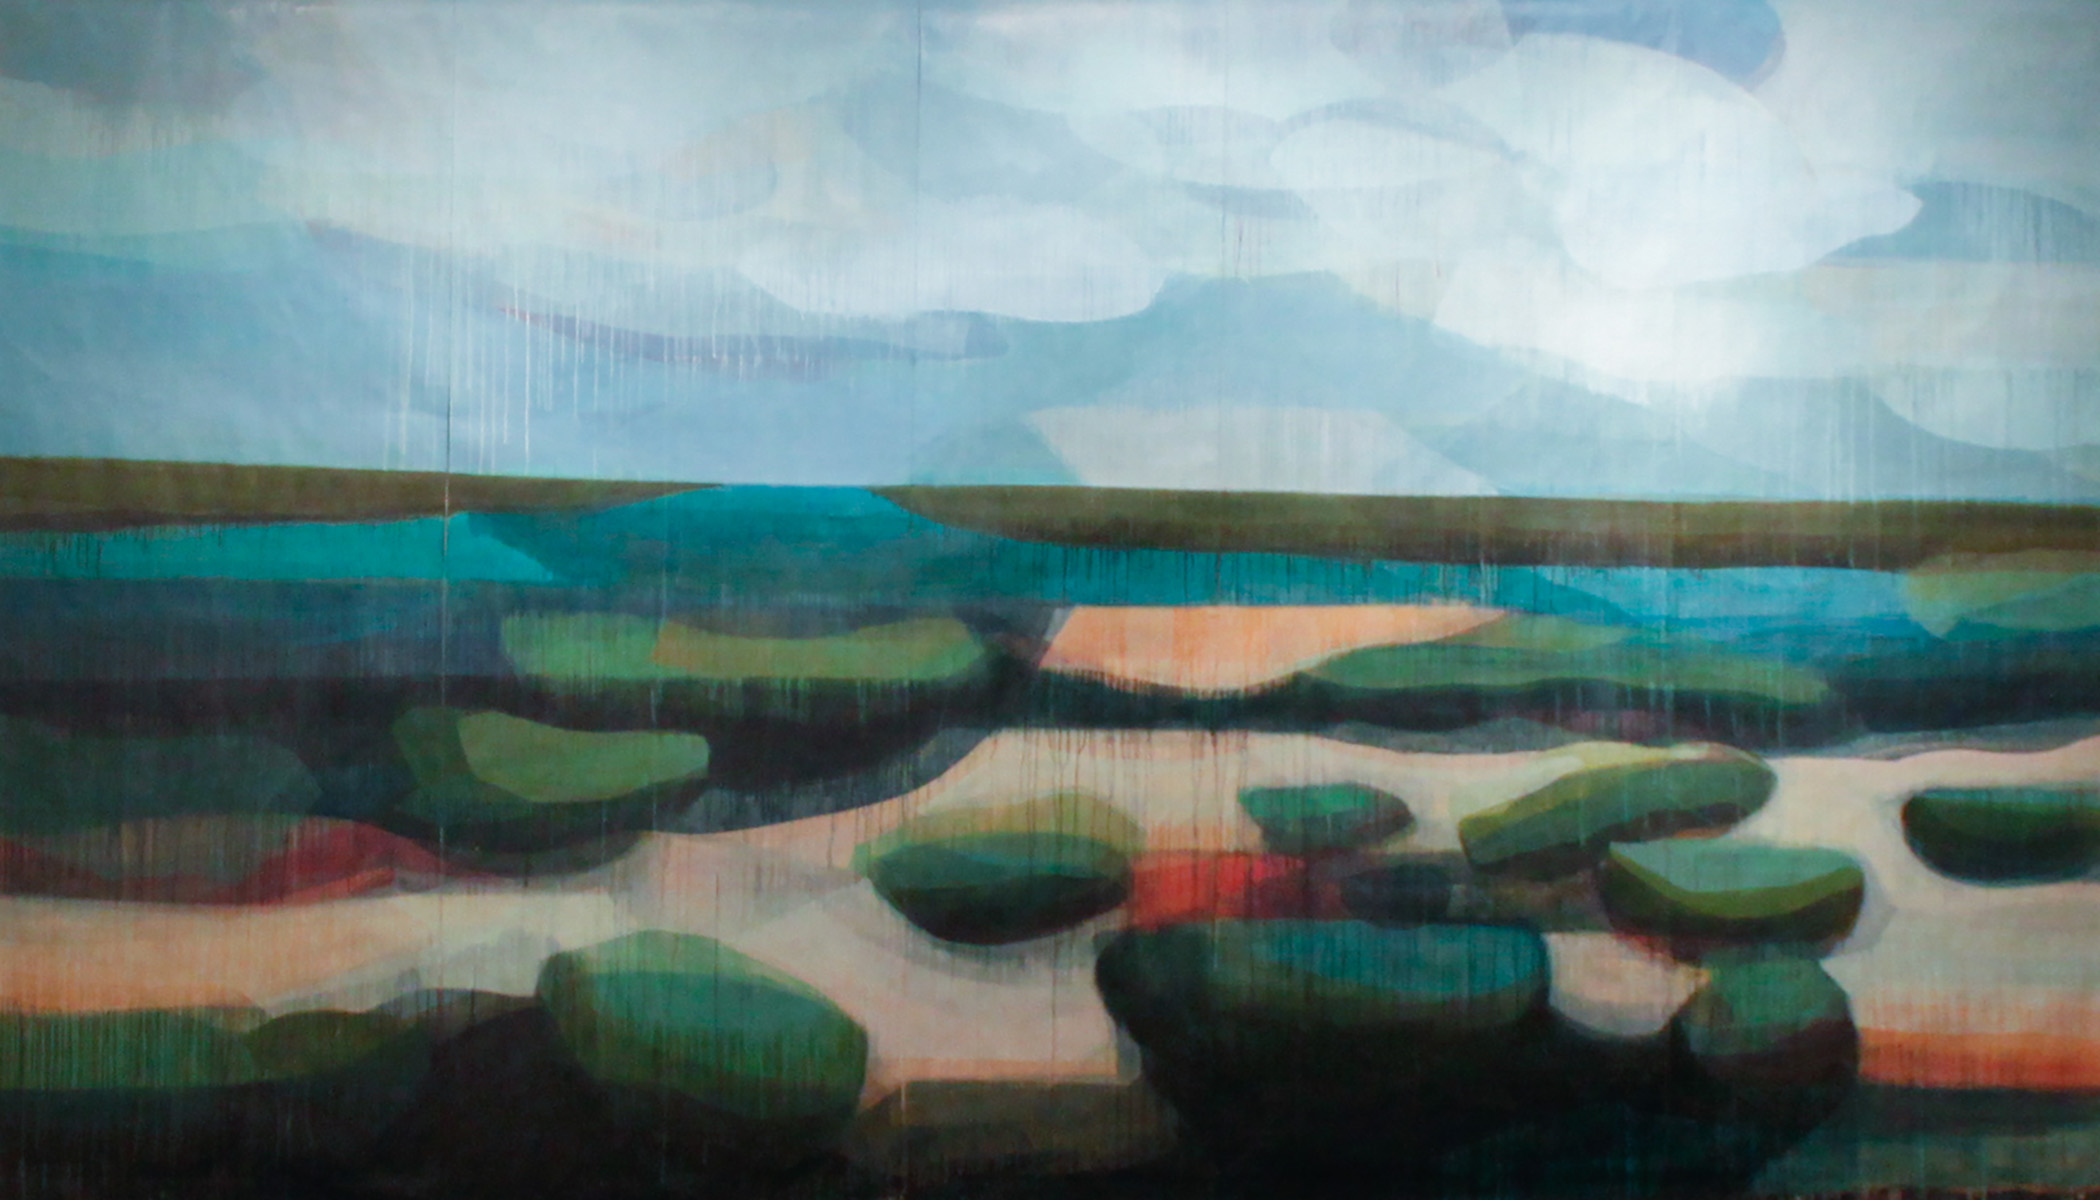 (color fields) water's edge, 8' x 12', water-based media on paper, 2015